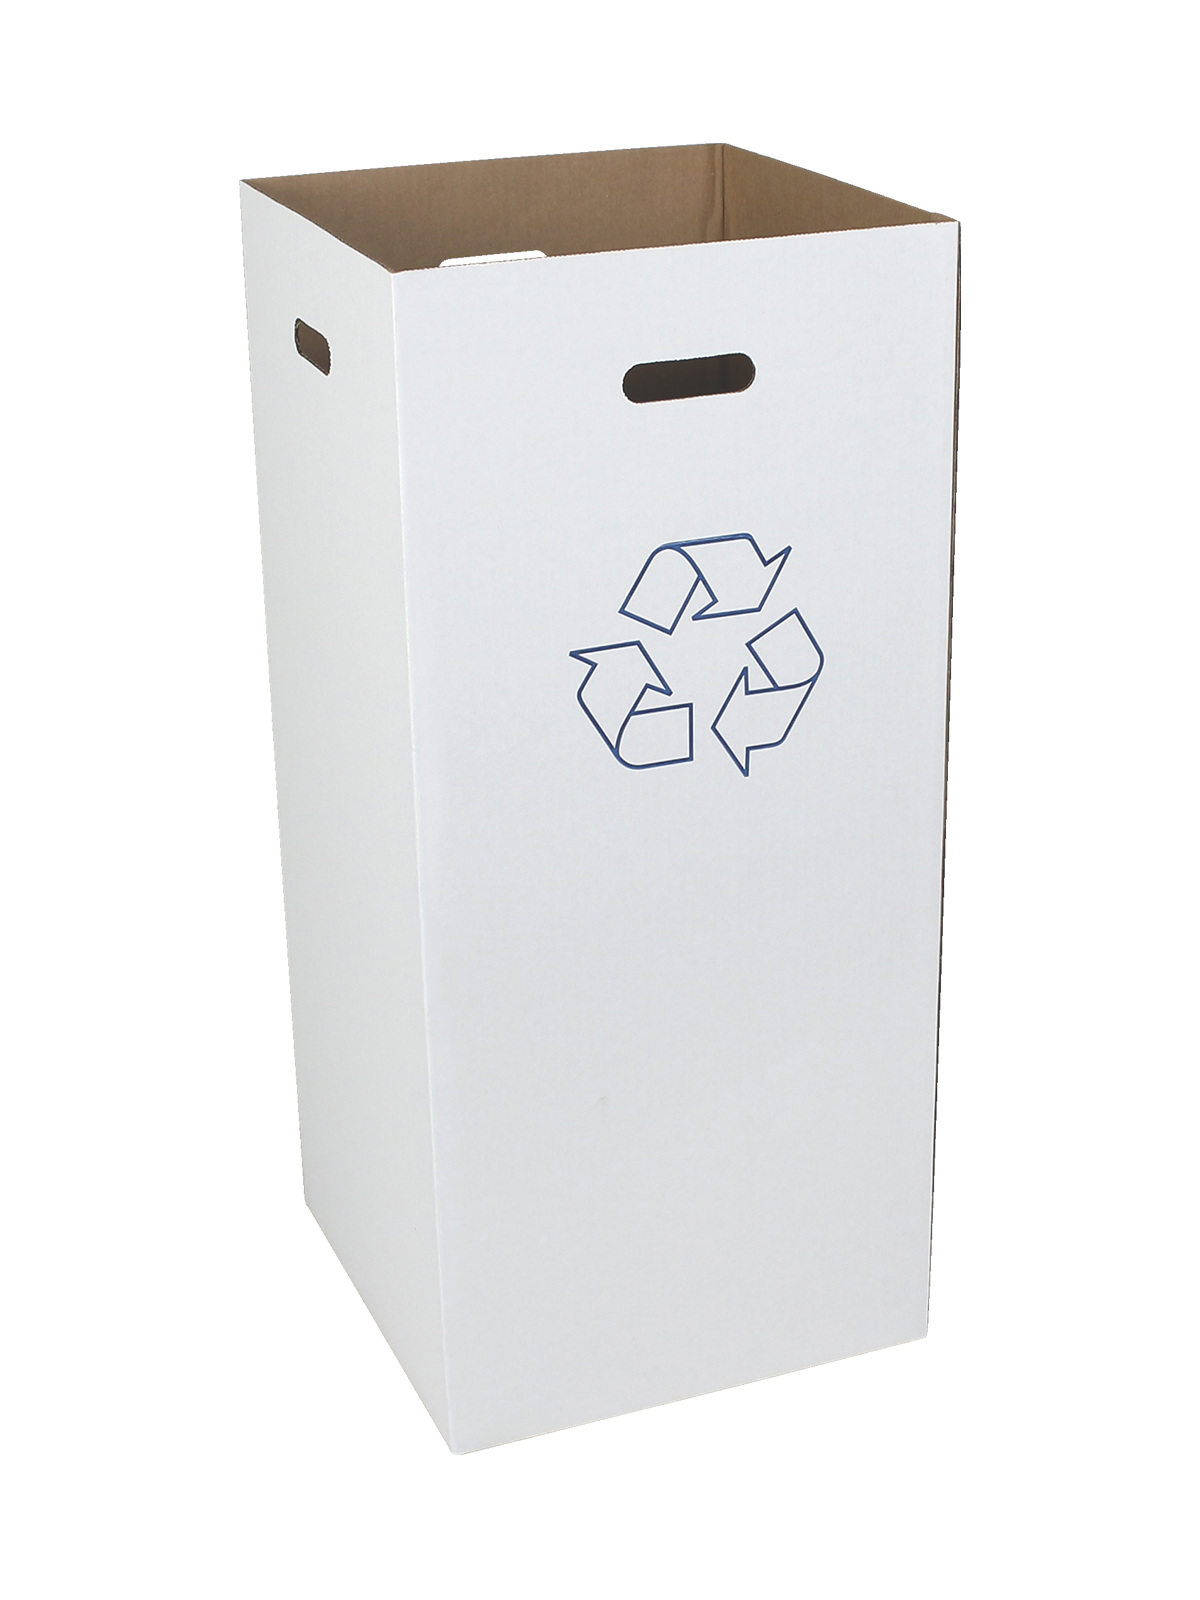 CORRUGATED RECYCLING BIN - 10 PACK - 28 GALLON - WHITE - MOBIUS LOOP